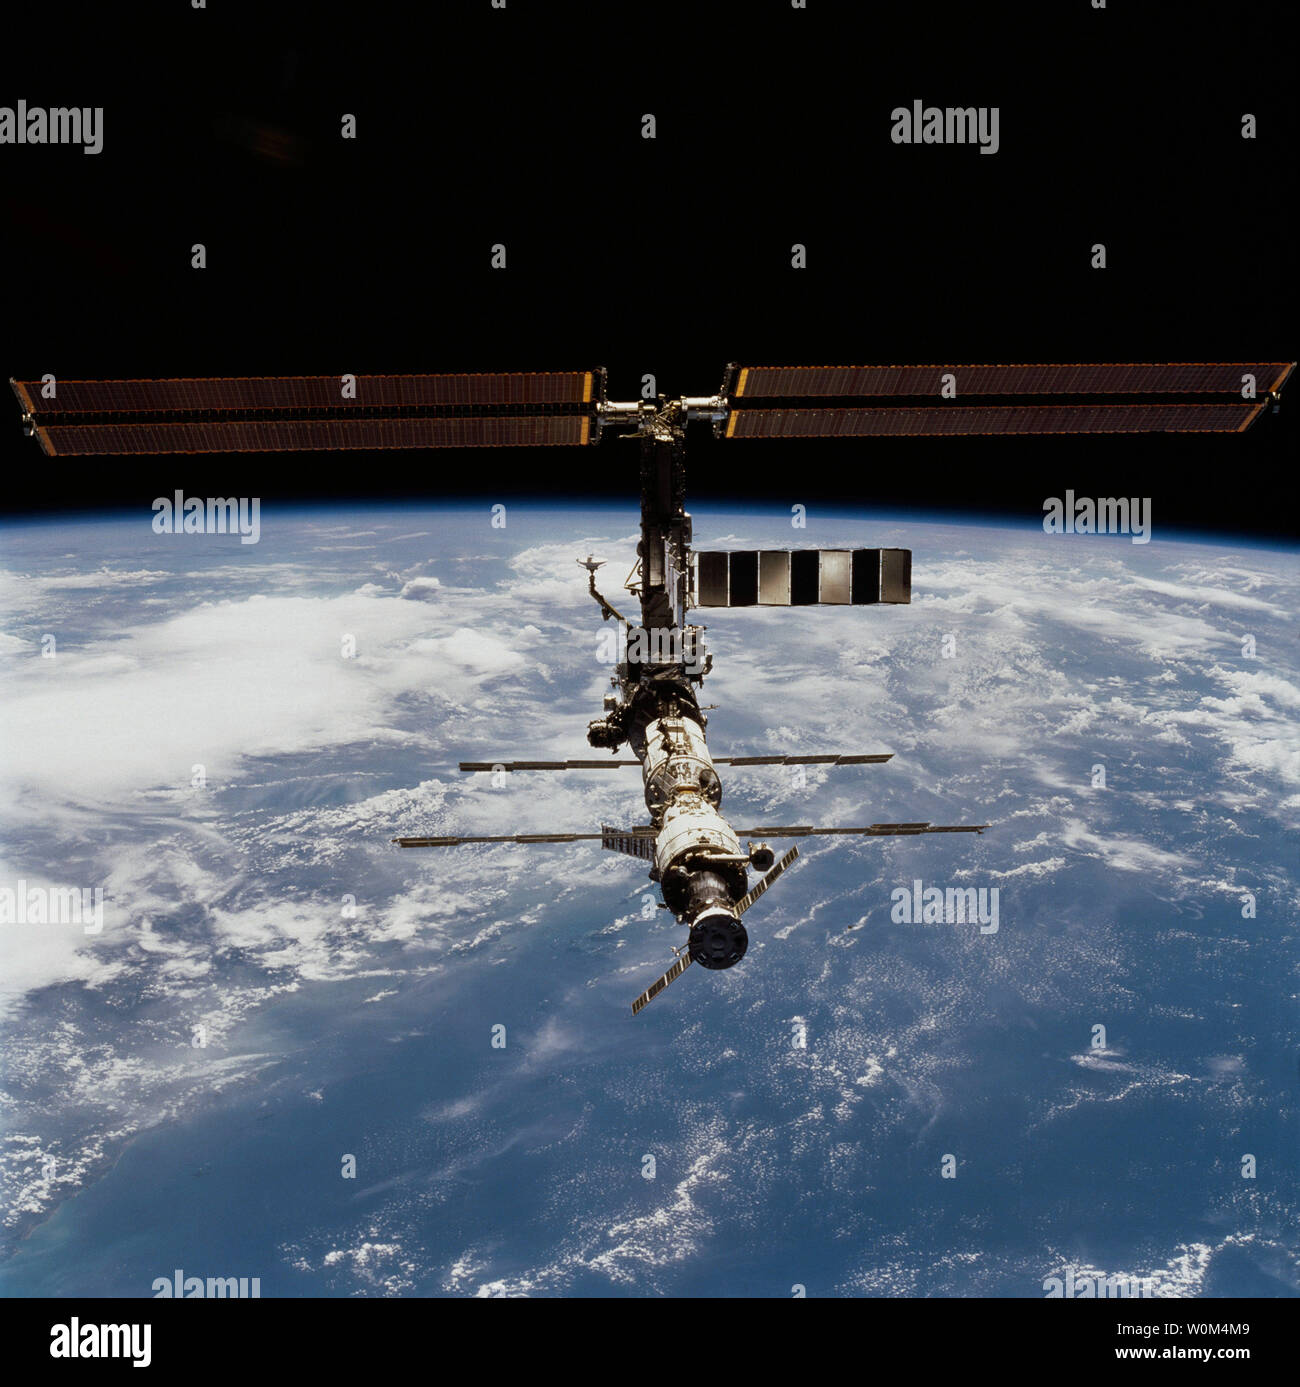 Iss Module Stock Photos & Iss Module Stock Images - Alamy